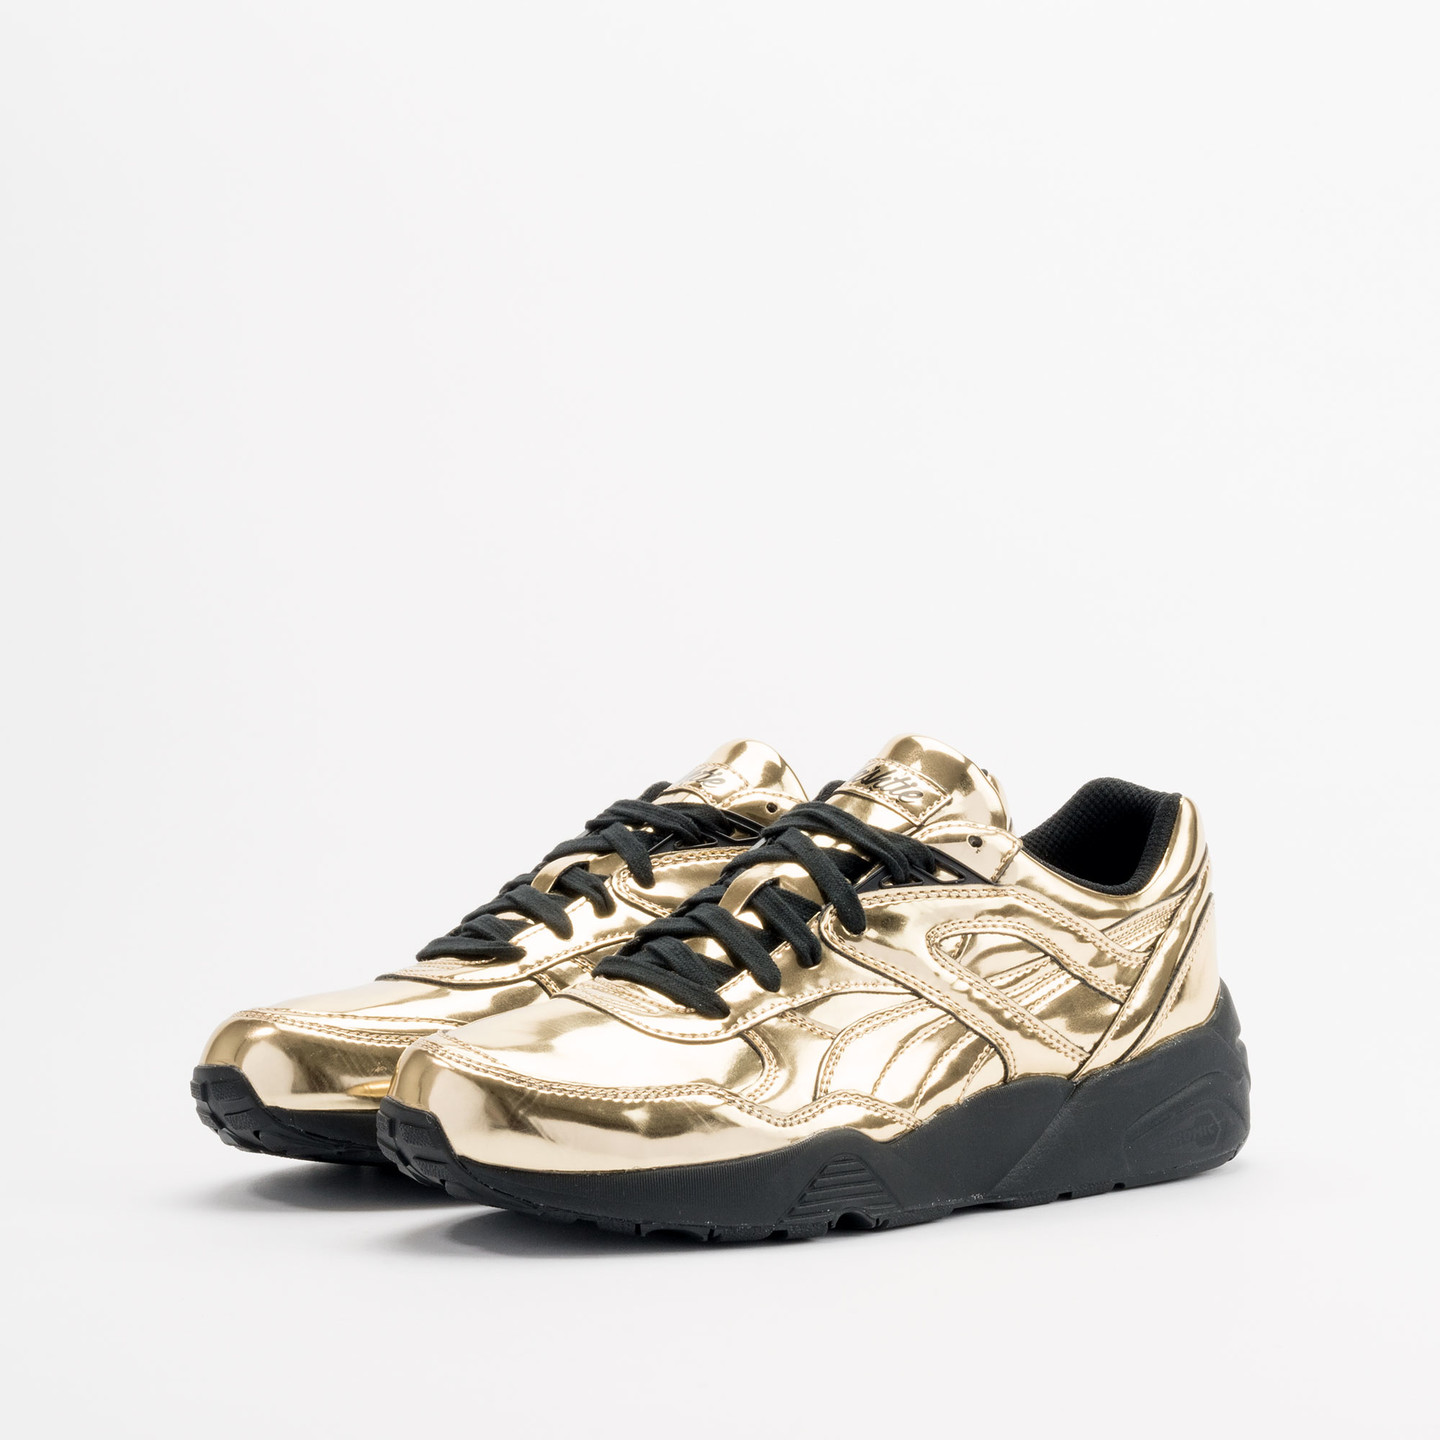 Puma R698 x Vashtie Gold Metallic Gold / Black 358838 01-37.5